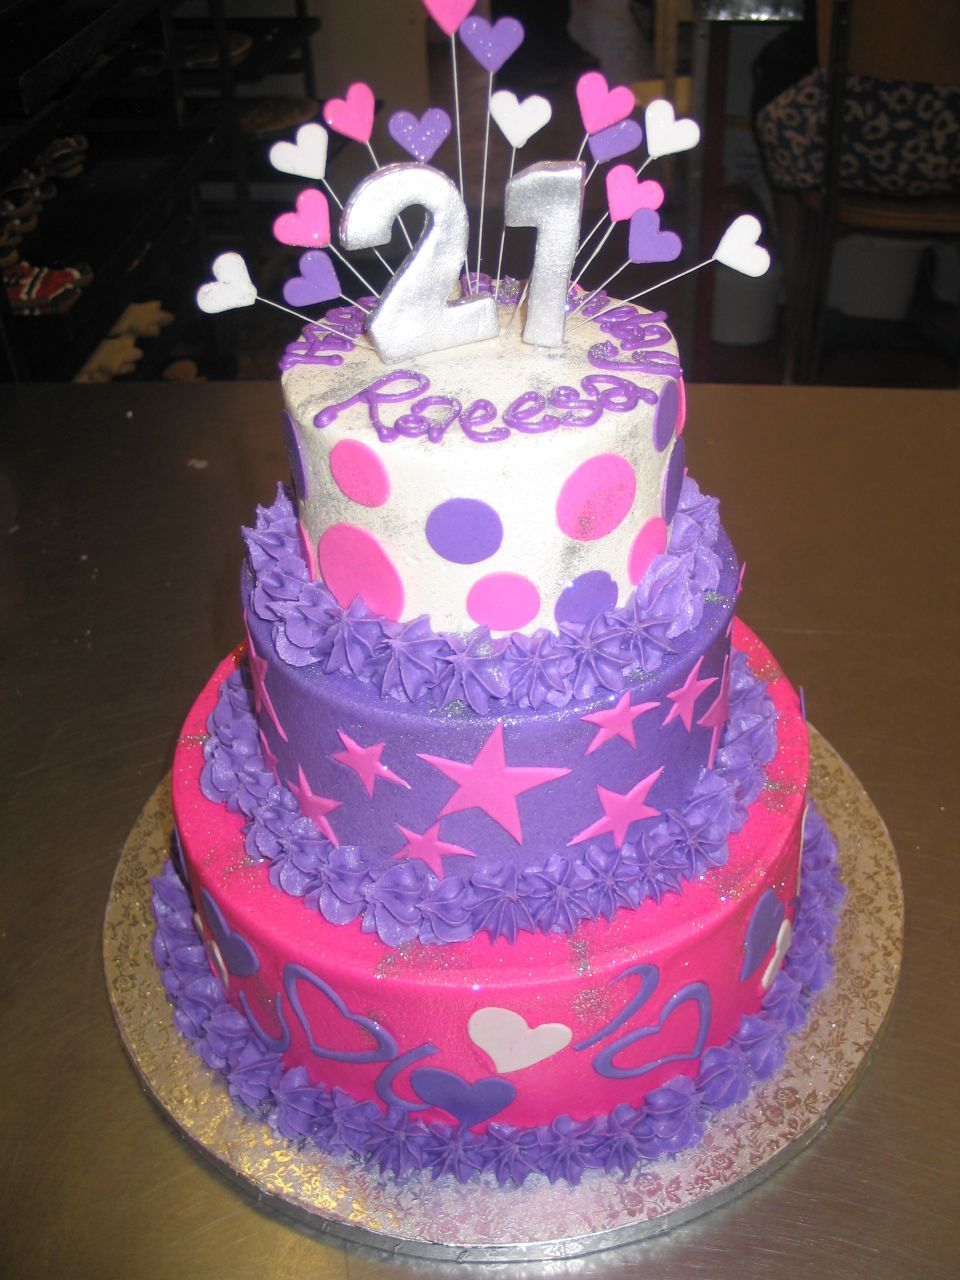 Cake Decorating Ideas For 21st Birthday : 21st Birthday Cakes   Decoration Ideas Little Birthday Cakes